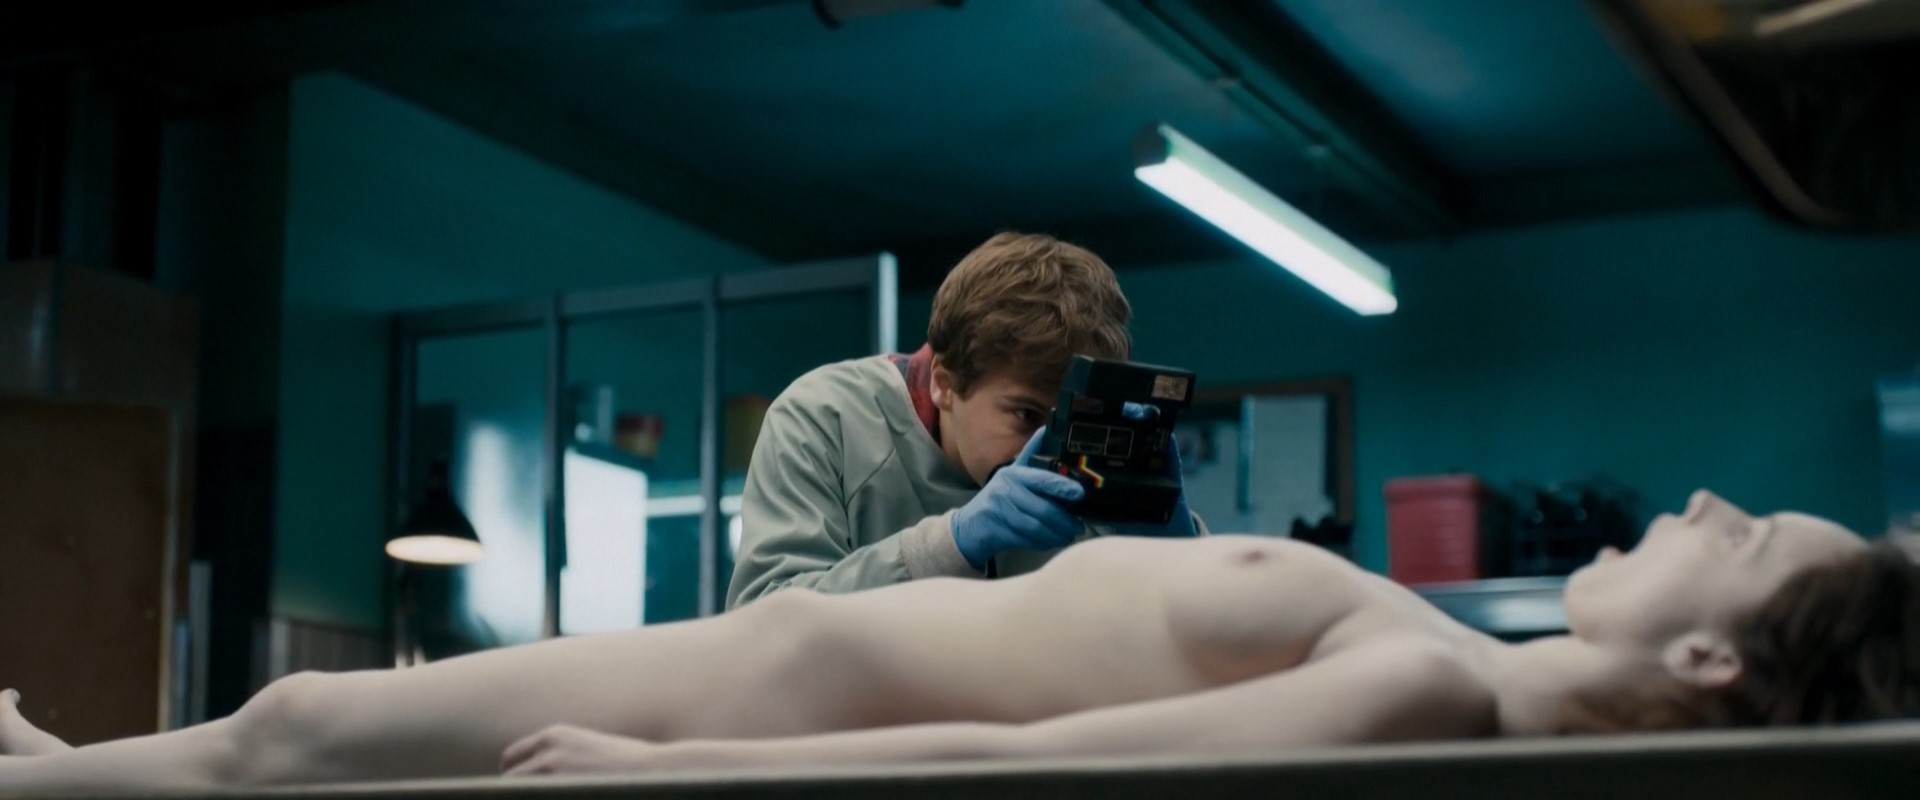 Olwen Catherine Kelly – The Autopsy of Jane Doe (2016) HD 1080p